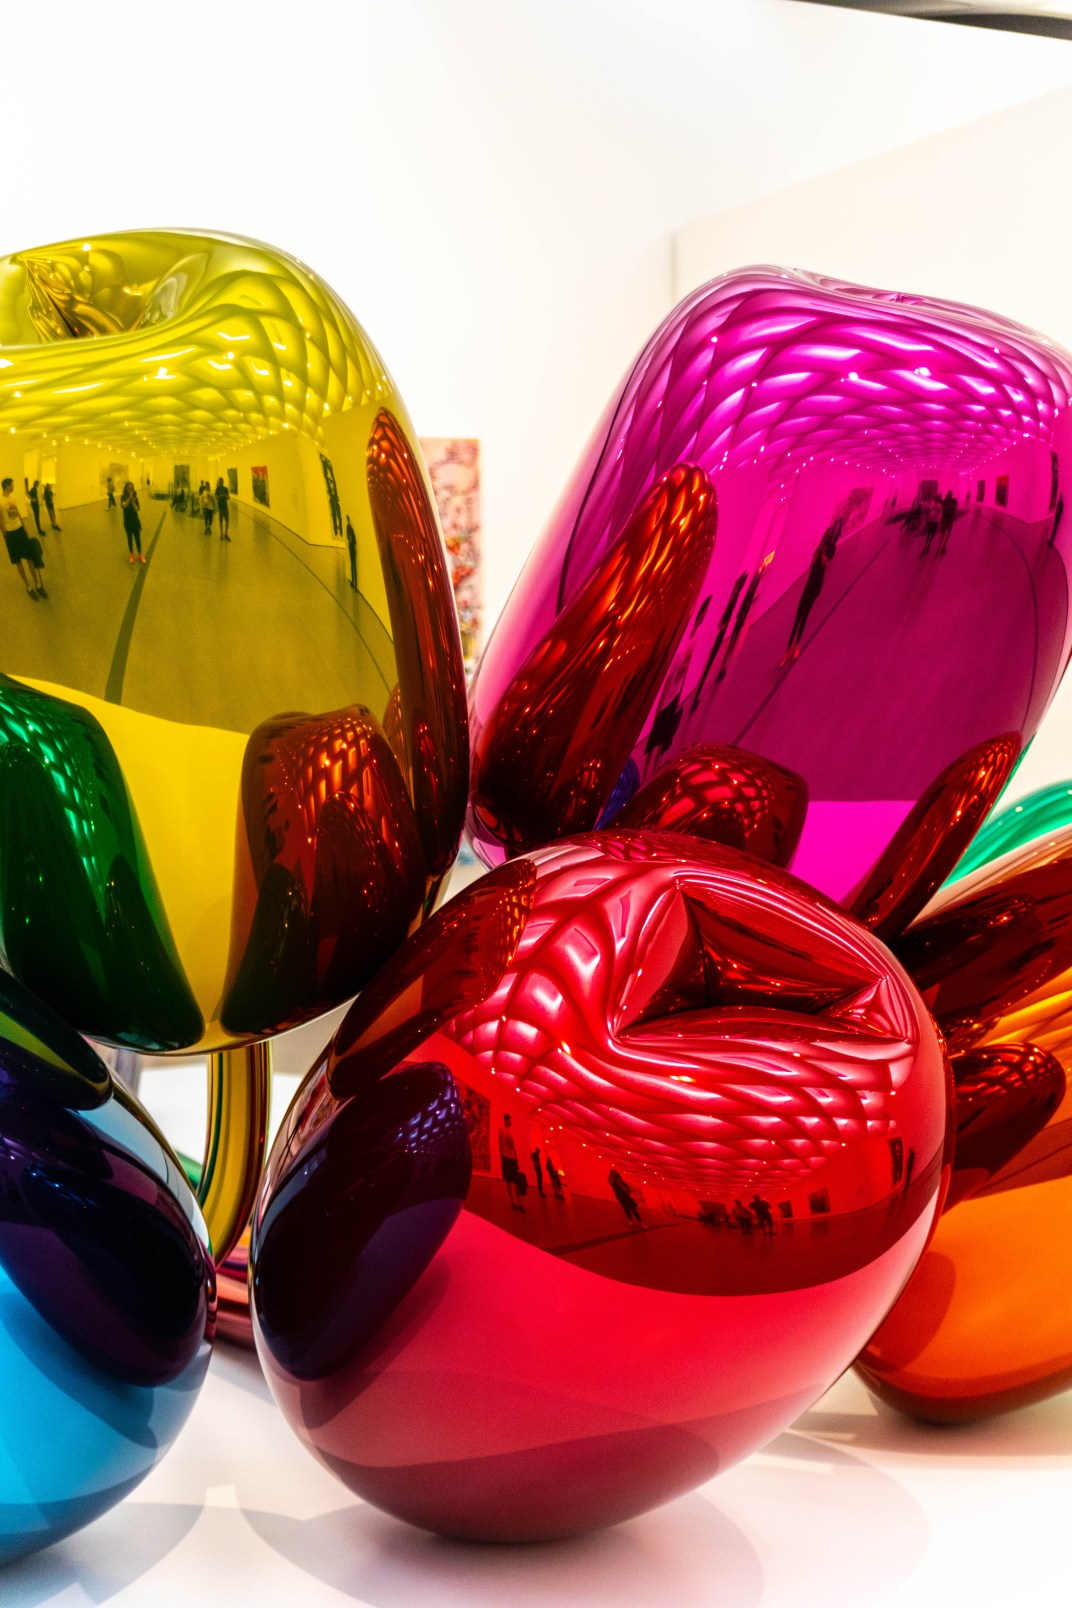 Tulips Metal Sculptures by Jeff Koons at The Broad Museum in Los Angeles